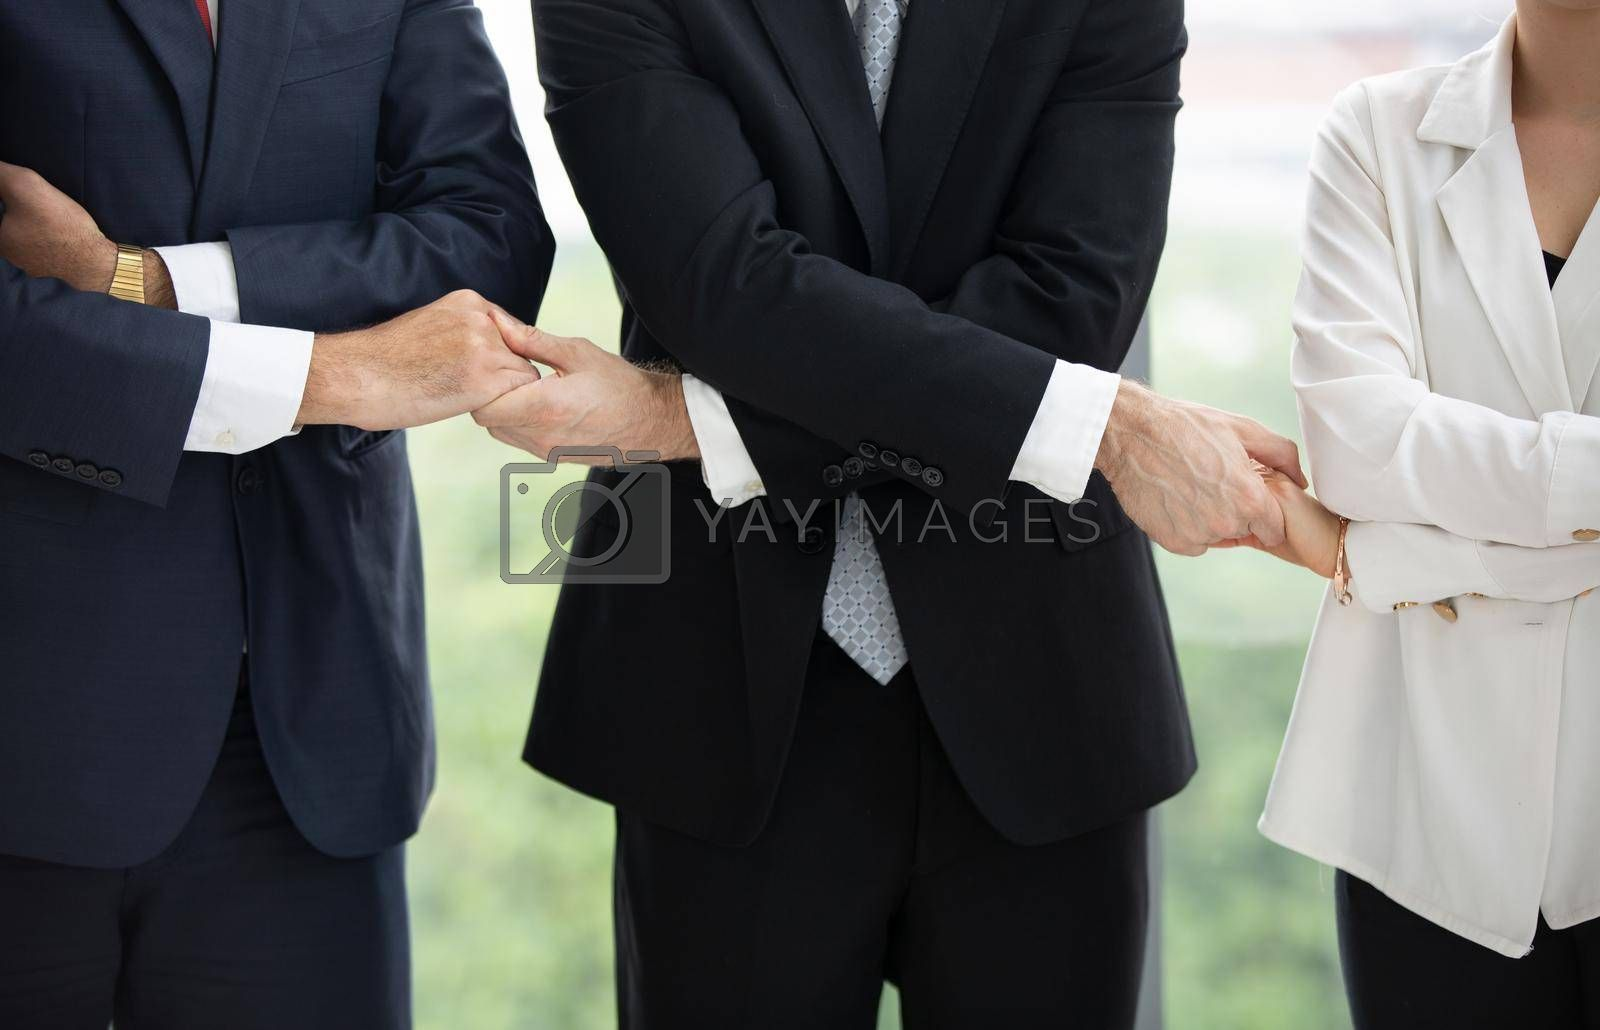 Business people give hands stack or holding each other for Unity and teamwork concept.